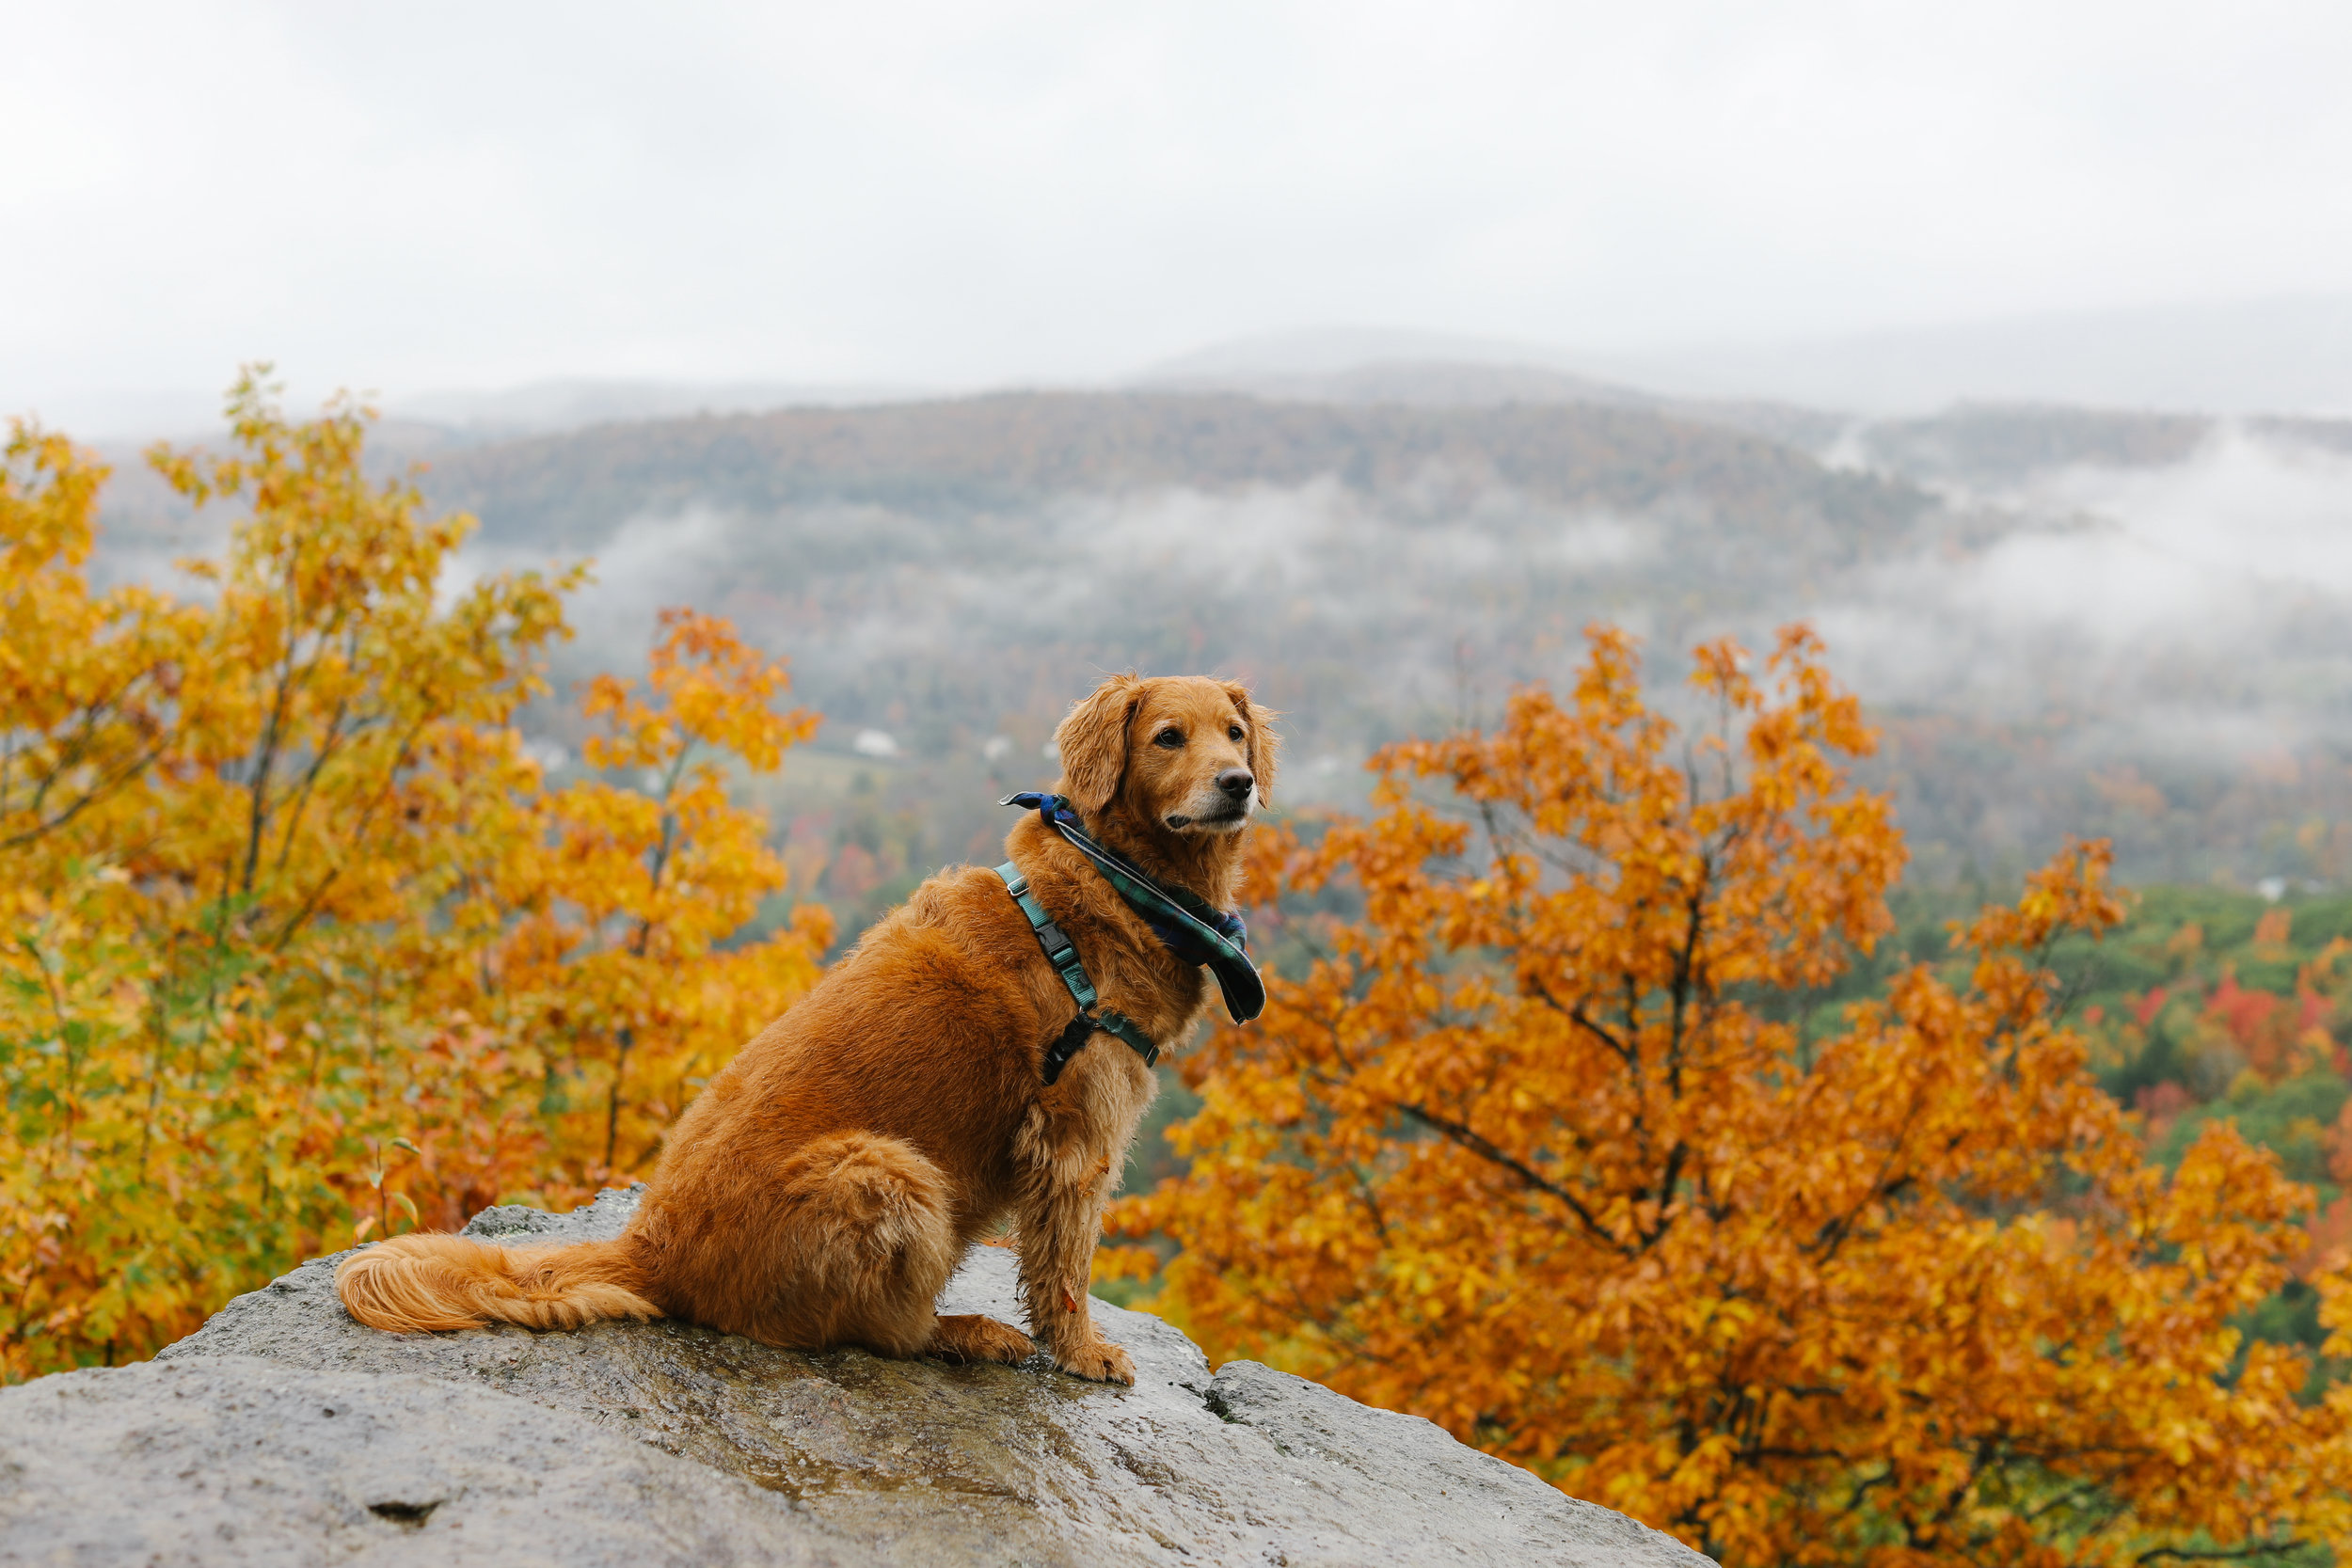 Elsie posing at the top of Mount Tom in Woodstock, VT.